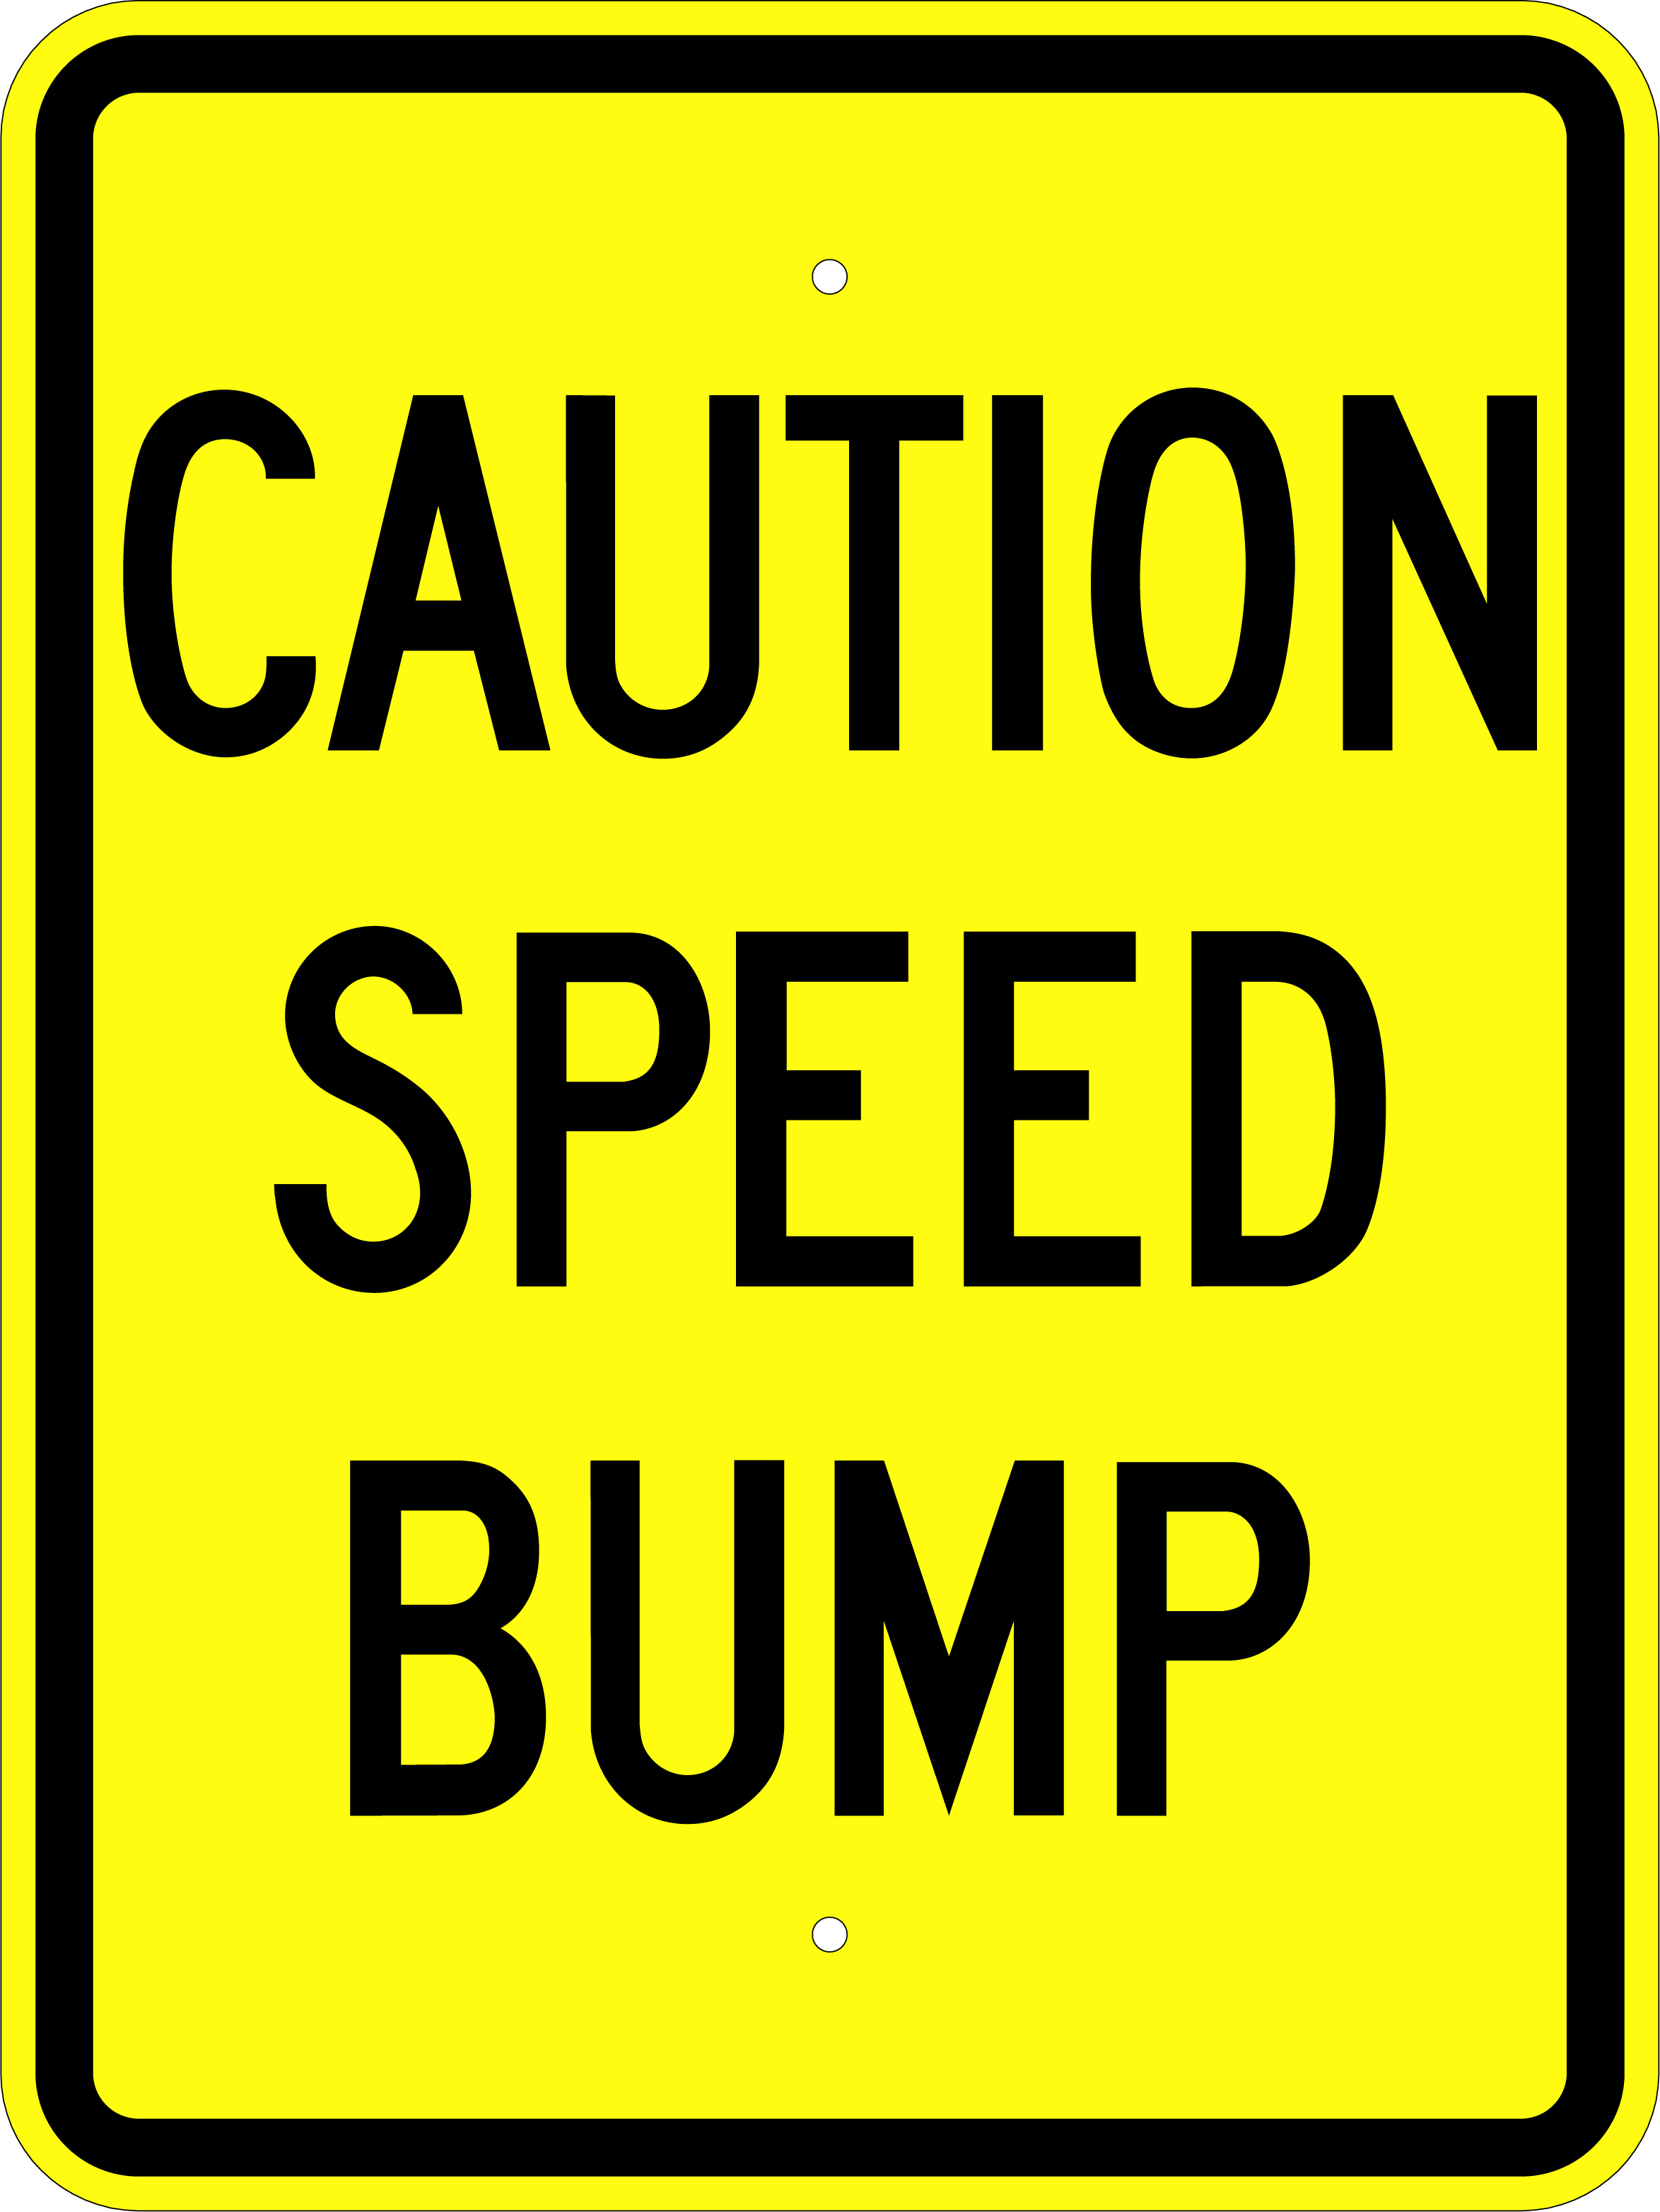 Caution Speed Bump 18x24 Sign